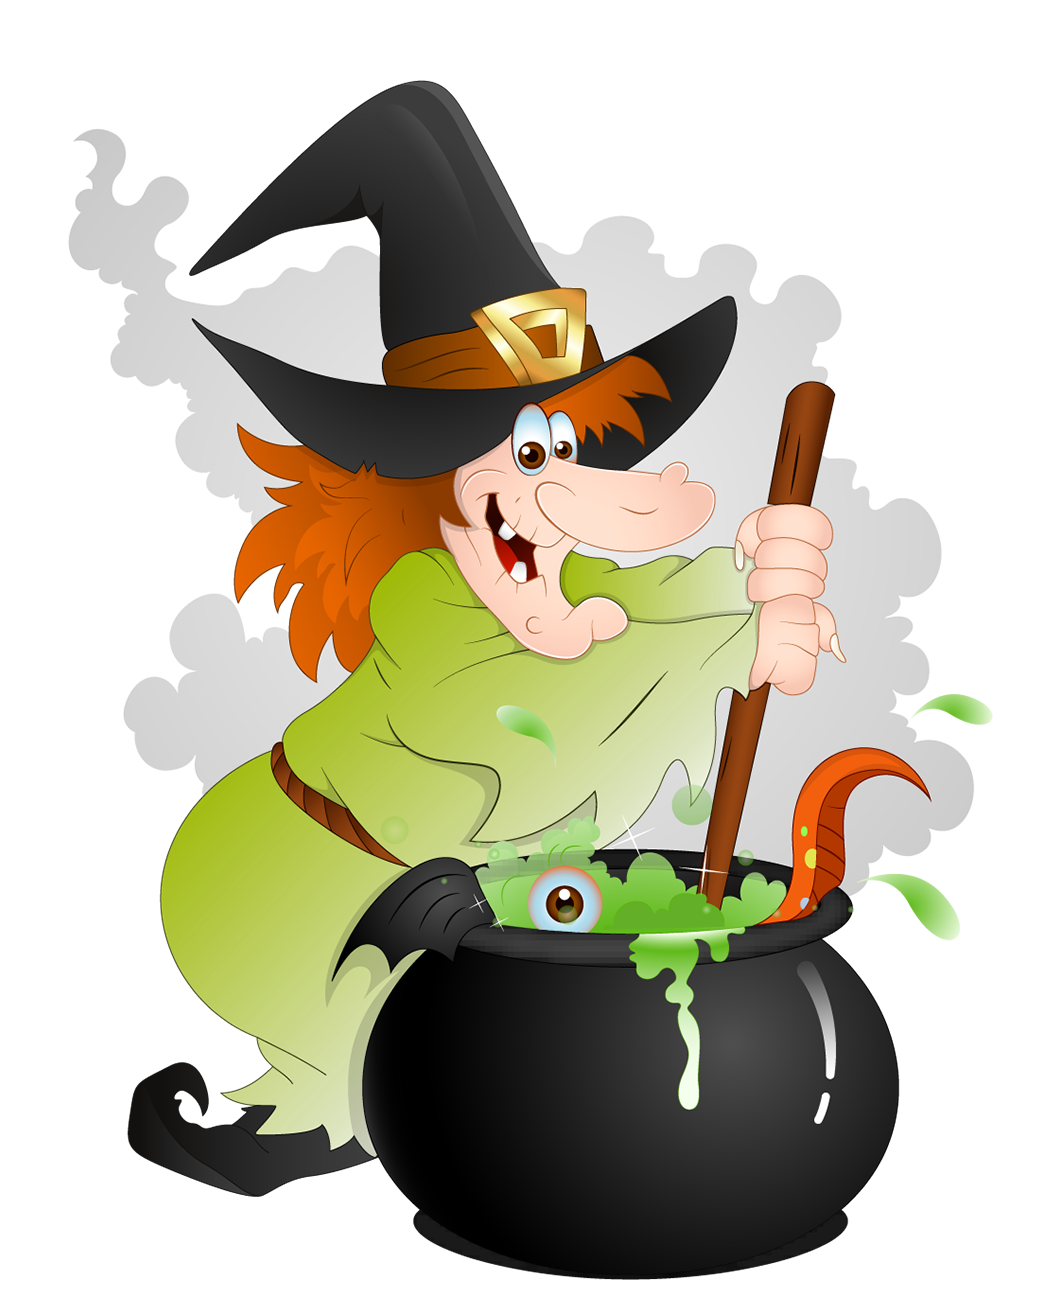 Witches Clip Art Clipart Image-Witches clip art clipart image-18